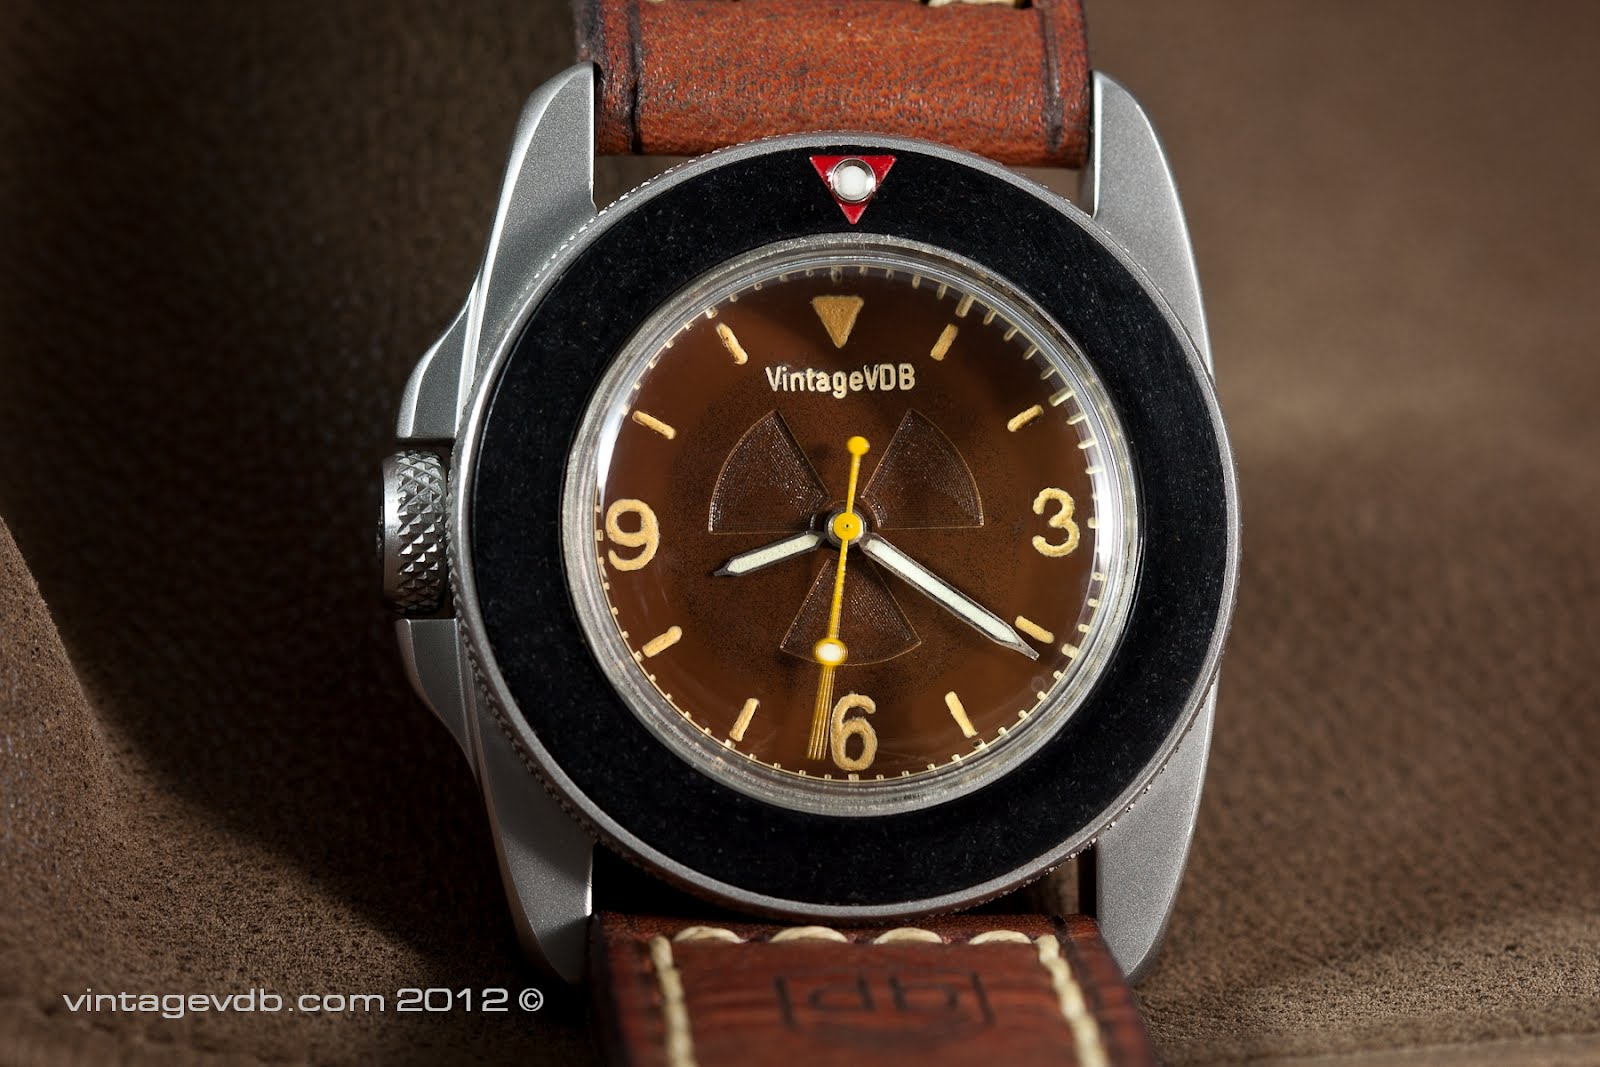 gilbert edition js company islandus made custom watches reykjavik watch anniversary years